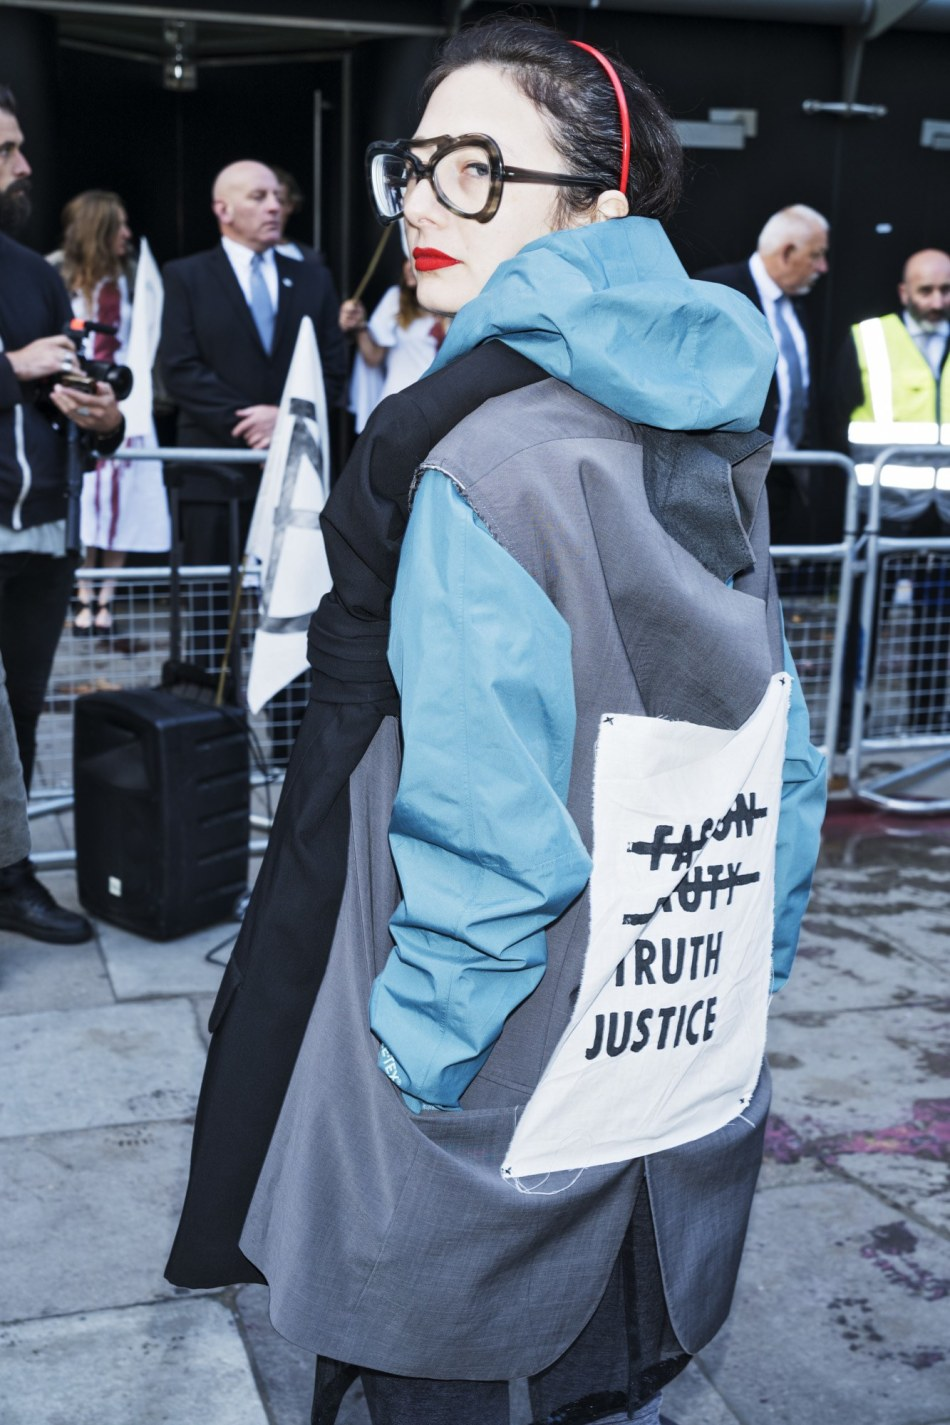 ExtinctionRebellion-LondonFashionWeek-11.jpg